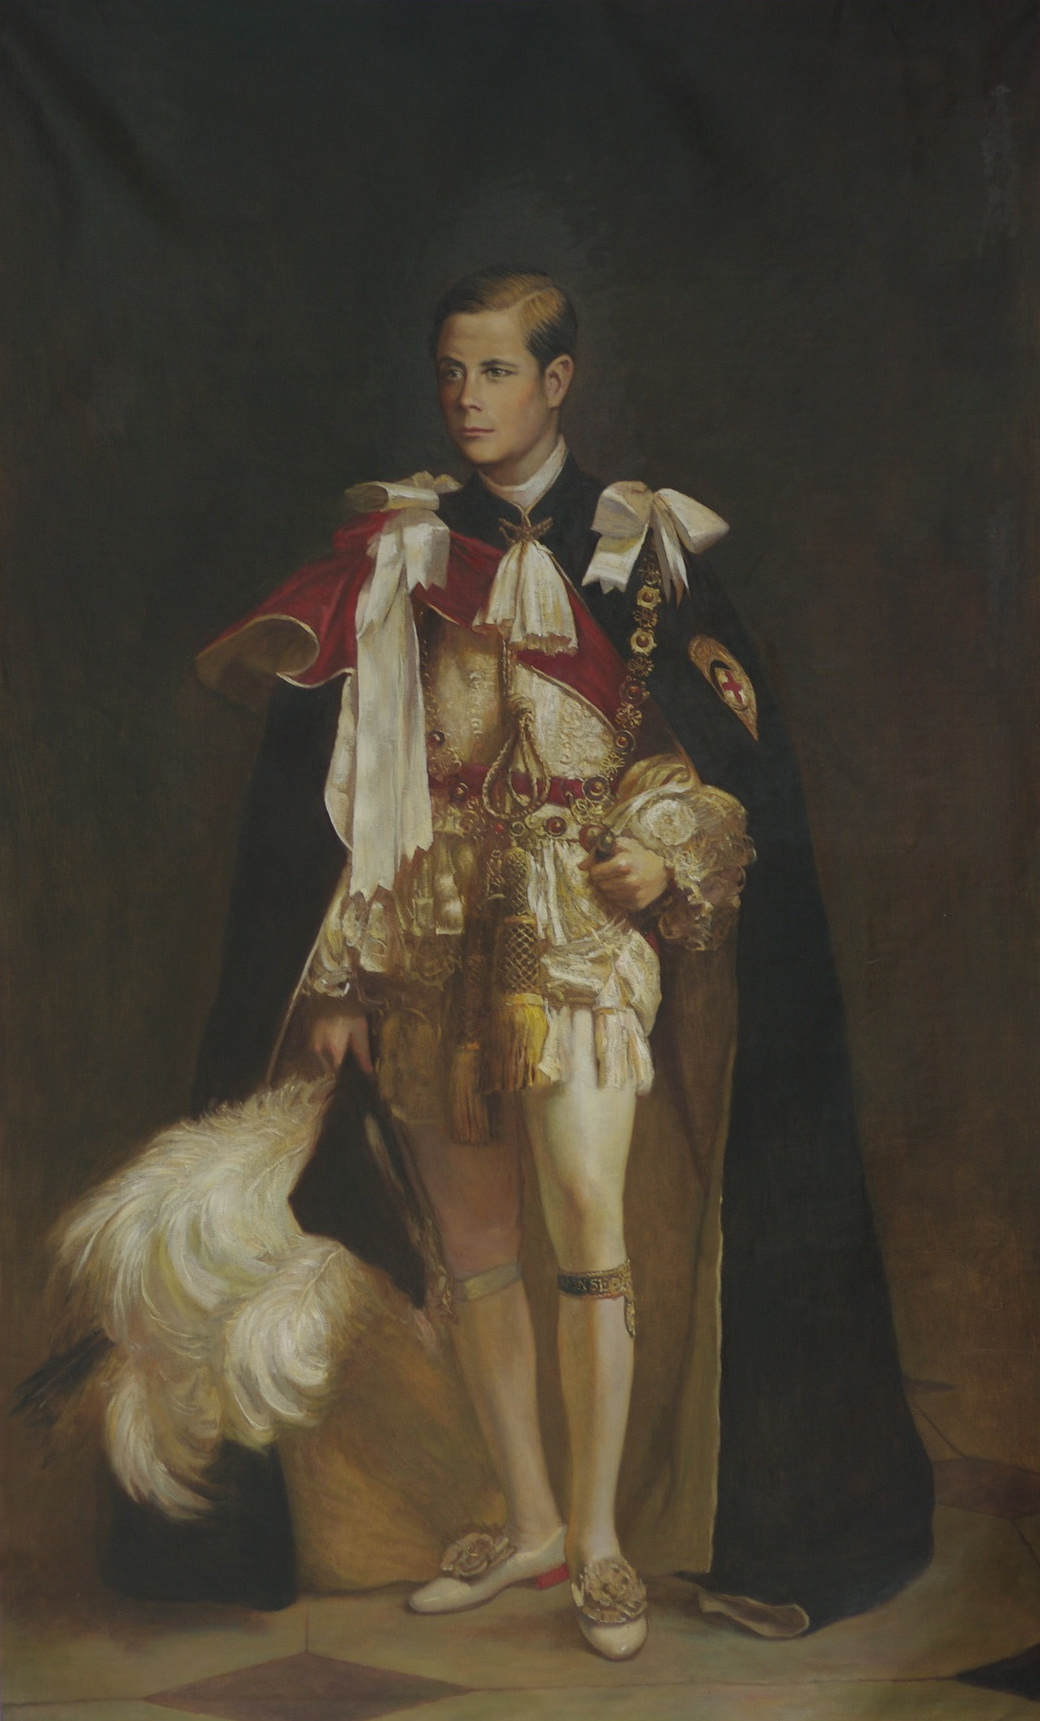 Prince of Wales - Edward VIII by Fabulous Masterpieces